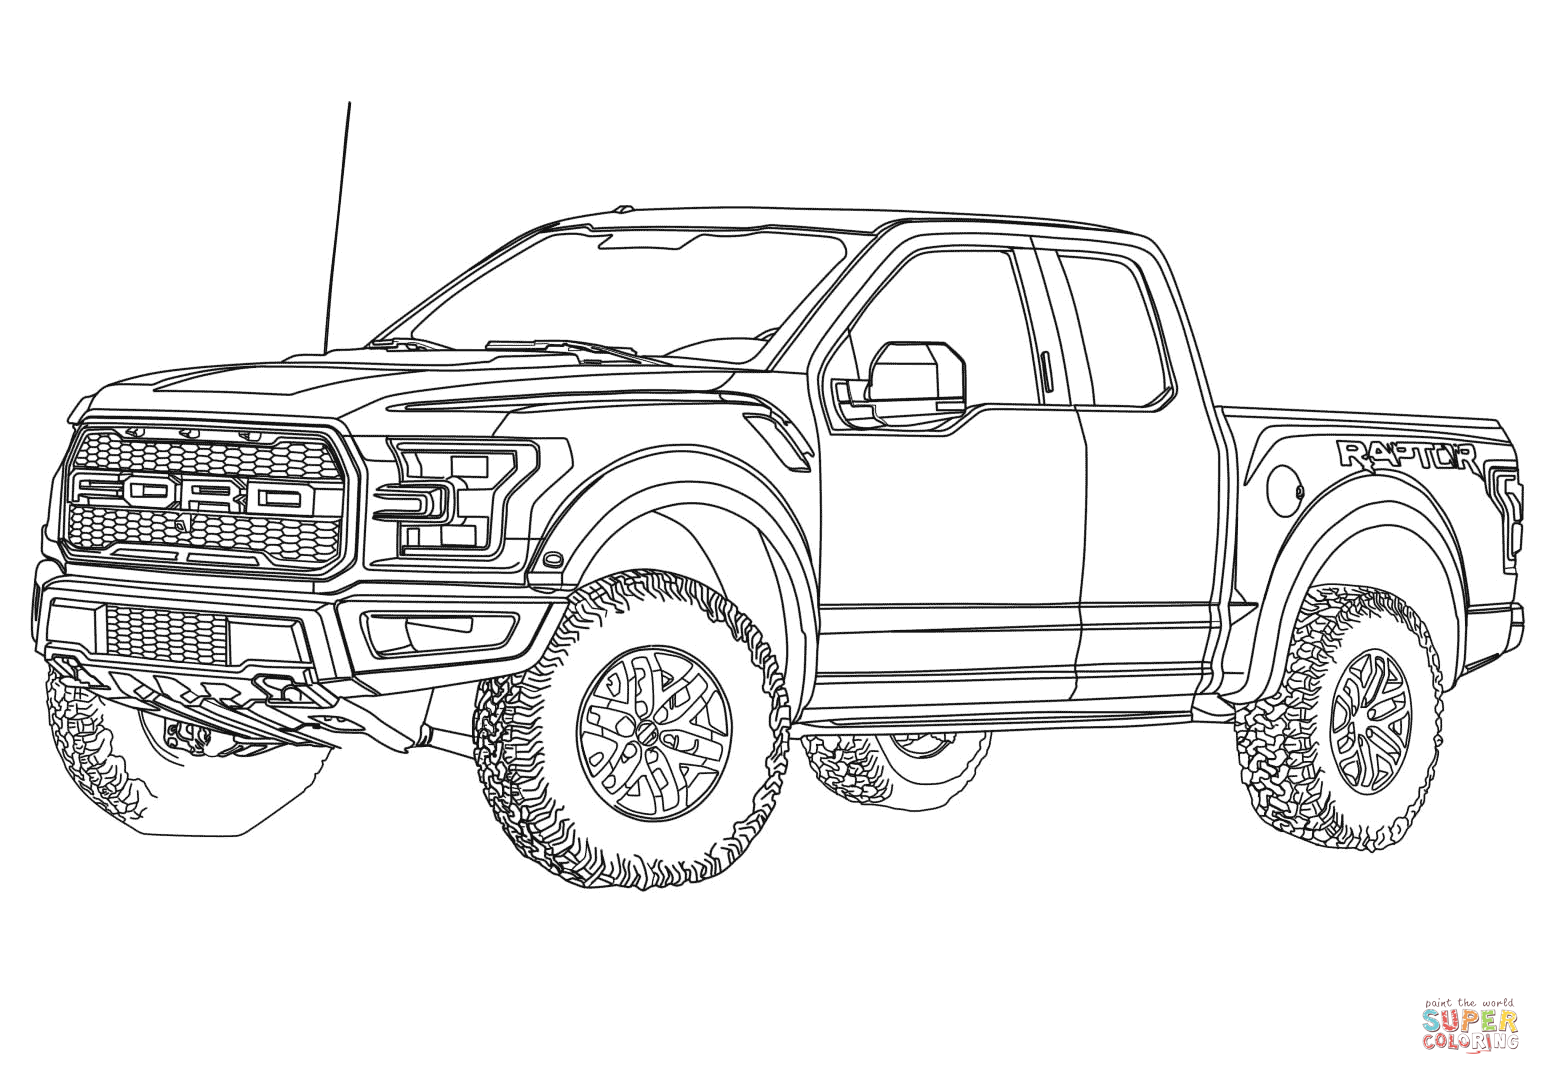 Related Image Truck Coloring Pages Ford Raptor Truck Cars Coloring Pages